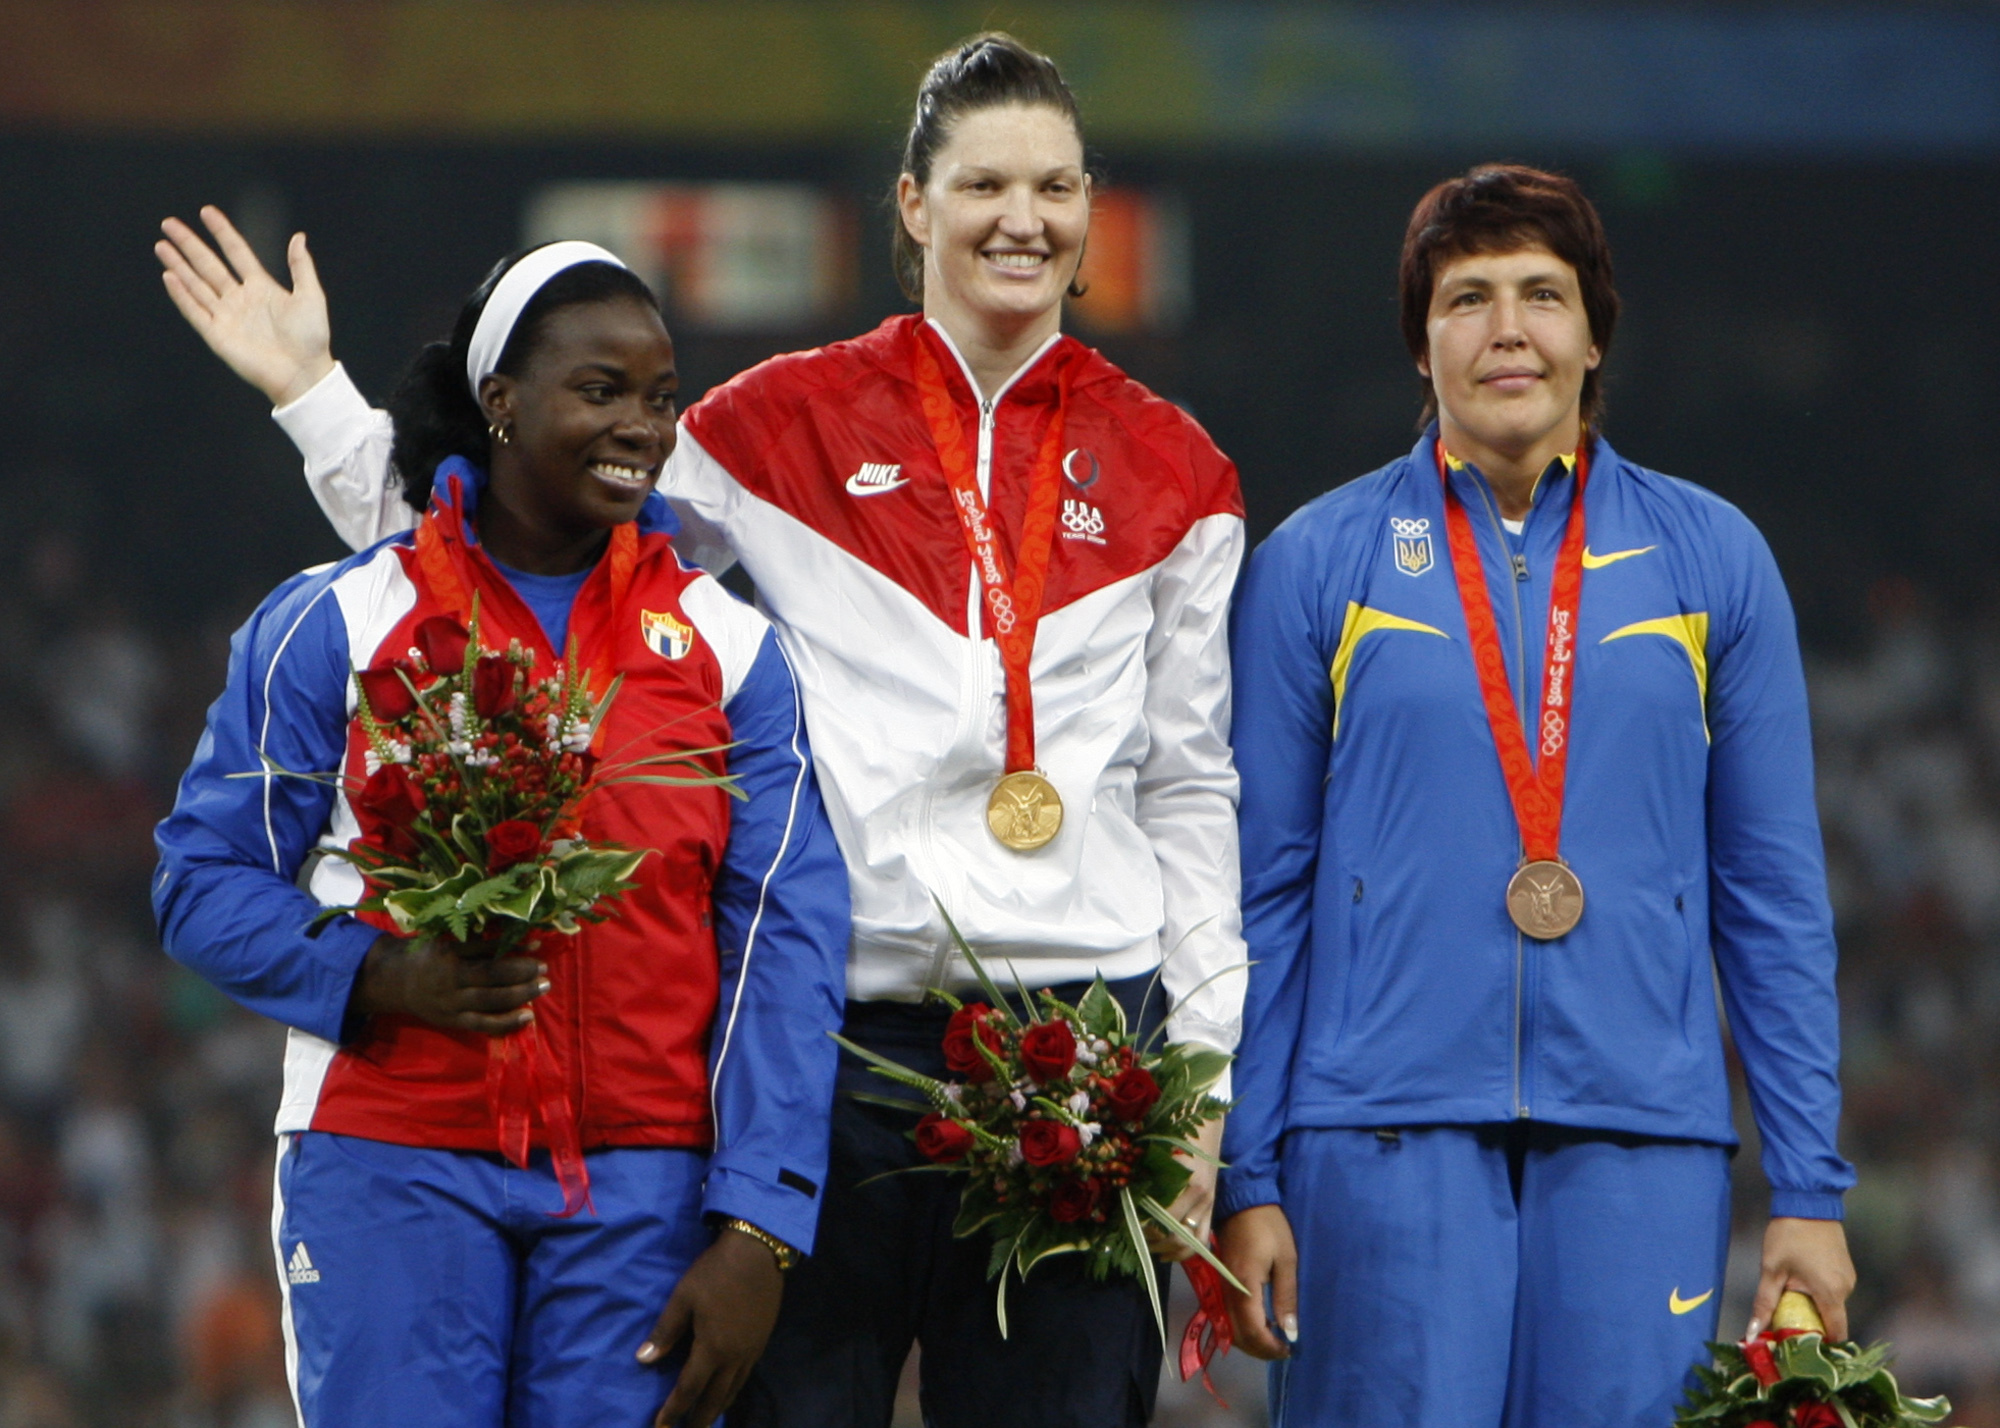 FILE- In this Monday, Aug. 18, 2008 file photo, silver winner Yarelys Barrios of Cuba, left, poses on the podium with gold medalist Stephanie Brown Trafton of the U.S, center, and bronze winner Olena Antonova of Ukraine during the awarding ceremony for th